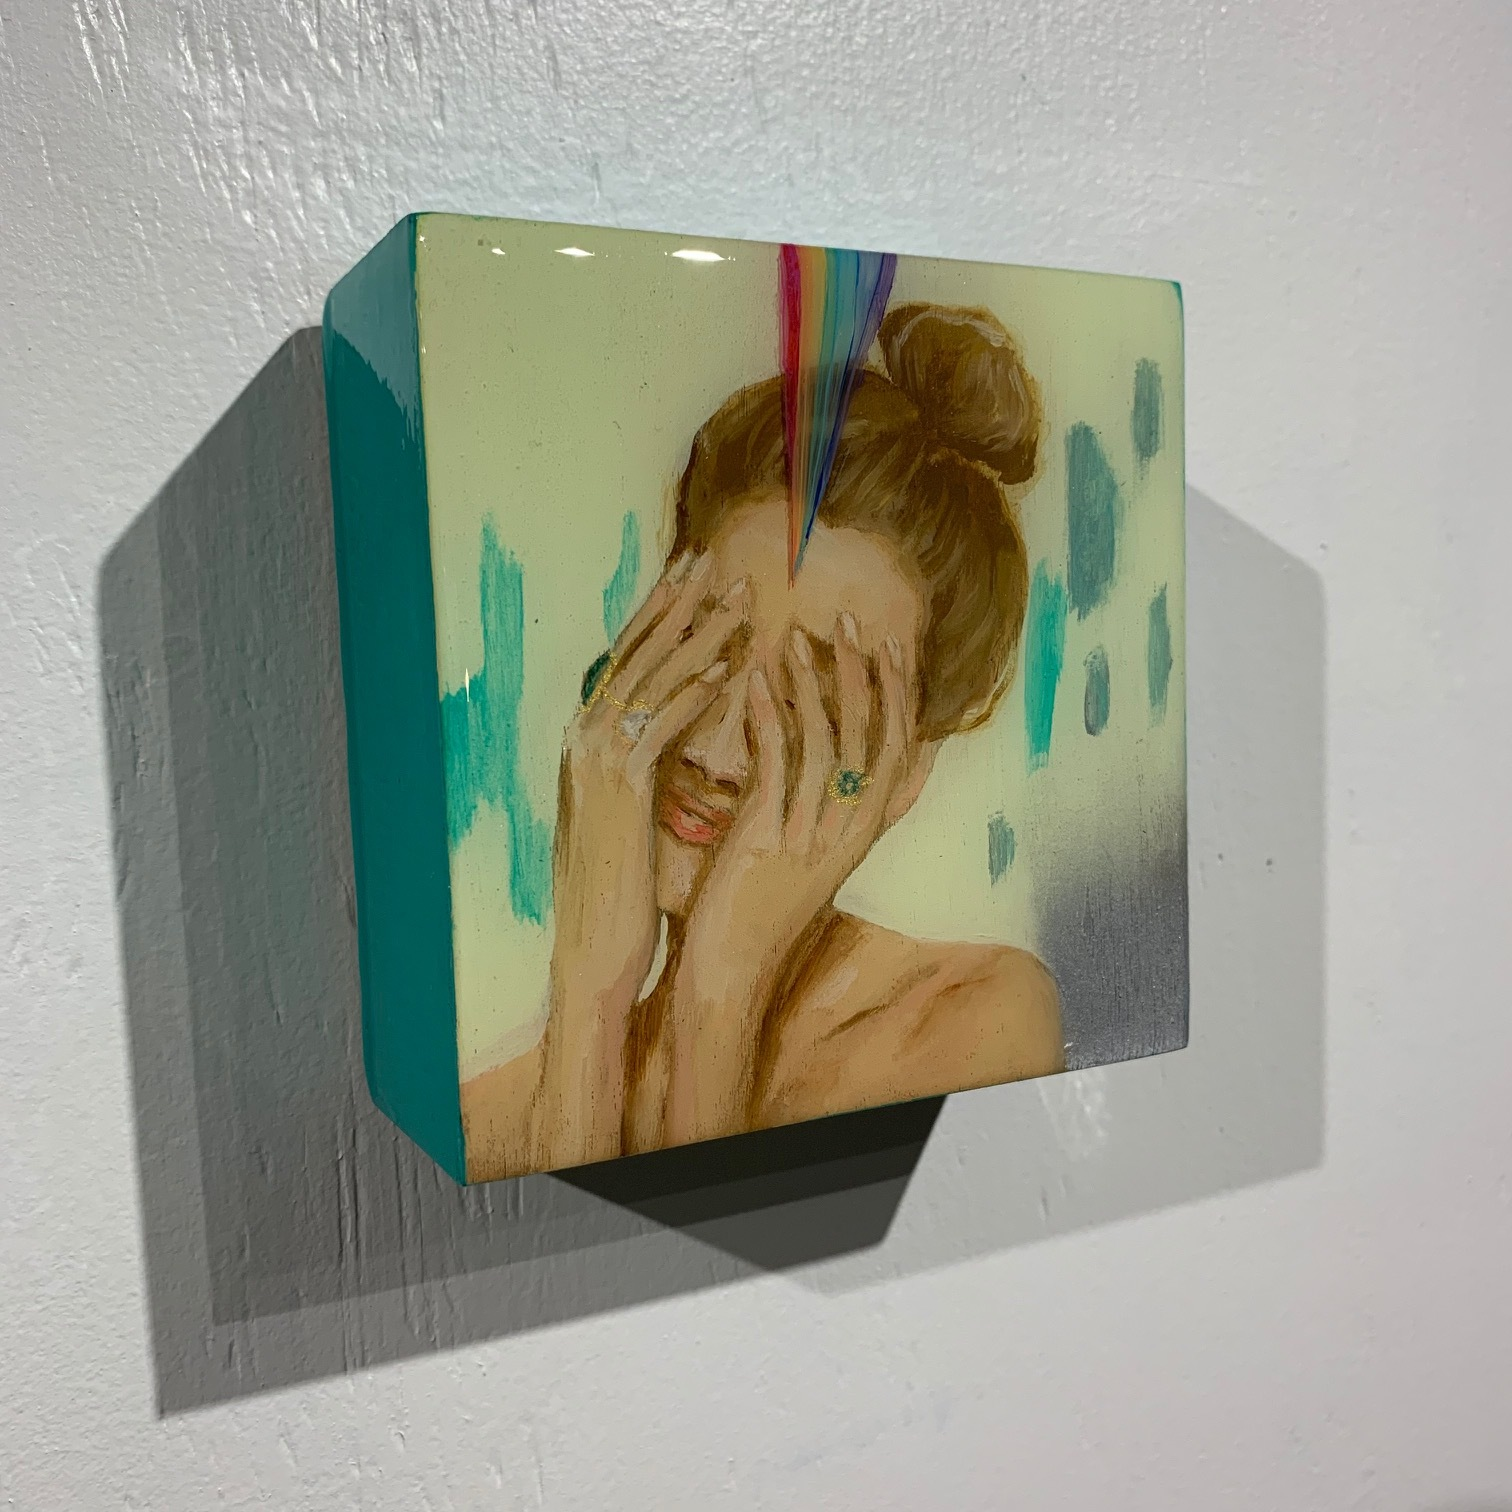 LeahGuzman_EnlightenedMini_2018_acrylic,resin_$150.00.jpg